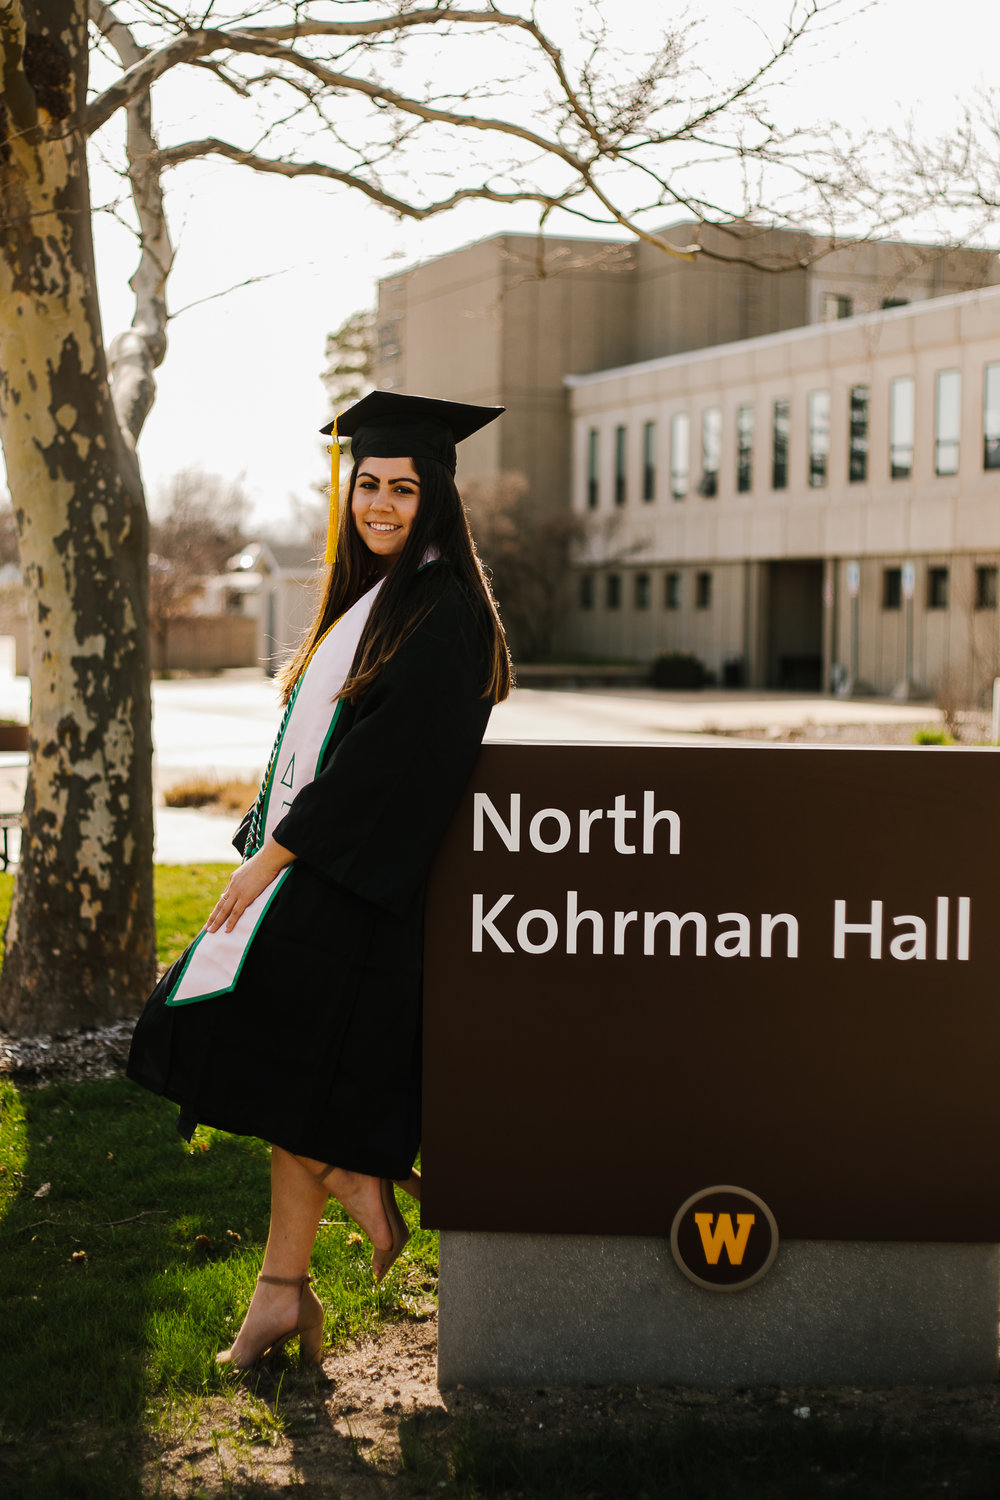 Western Michigan University Kohrman Hall